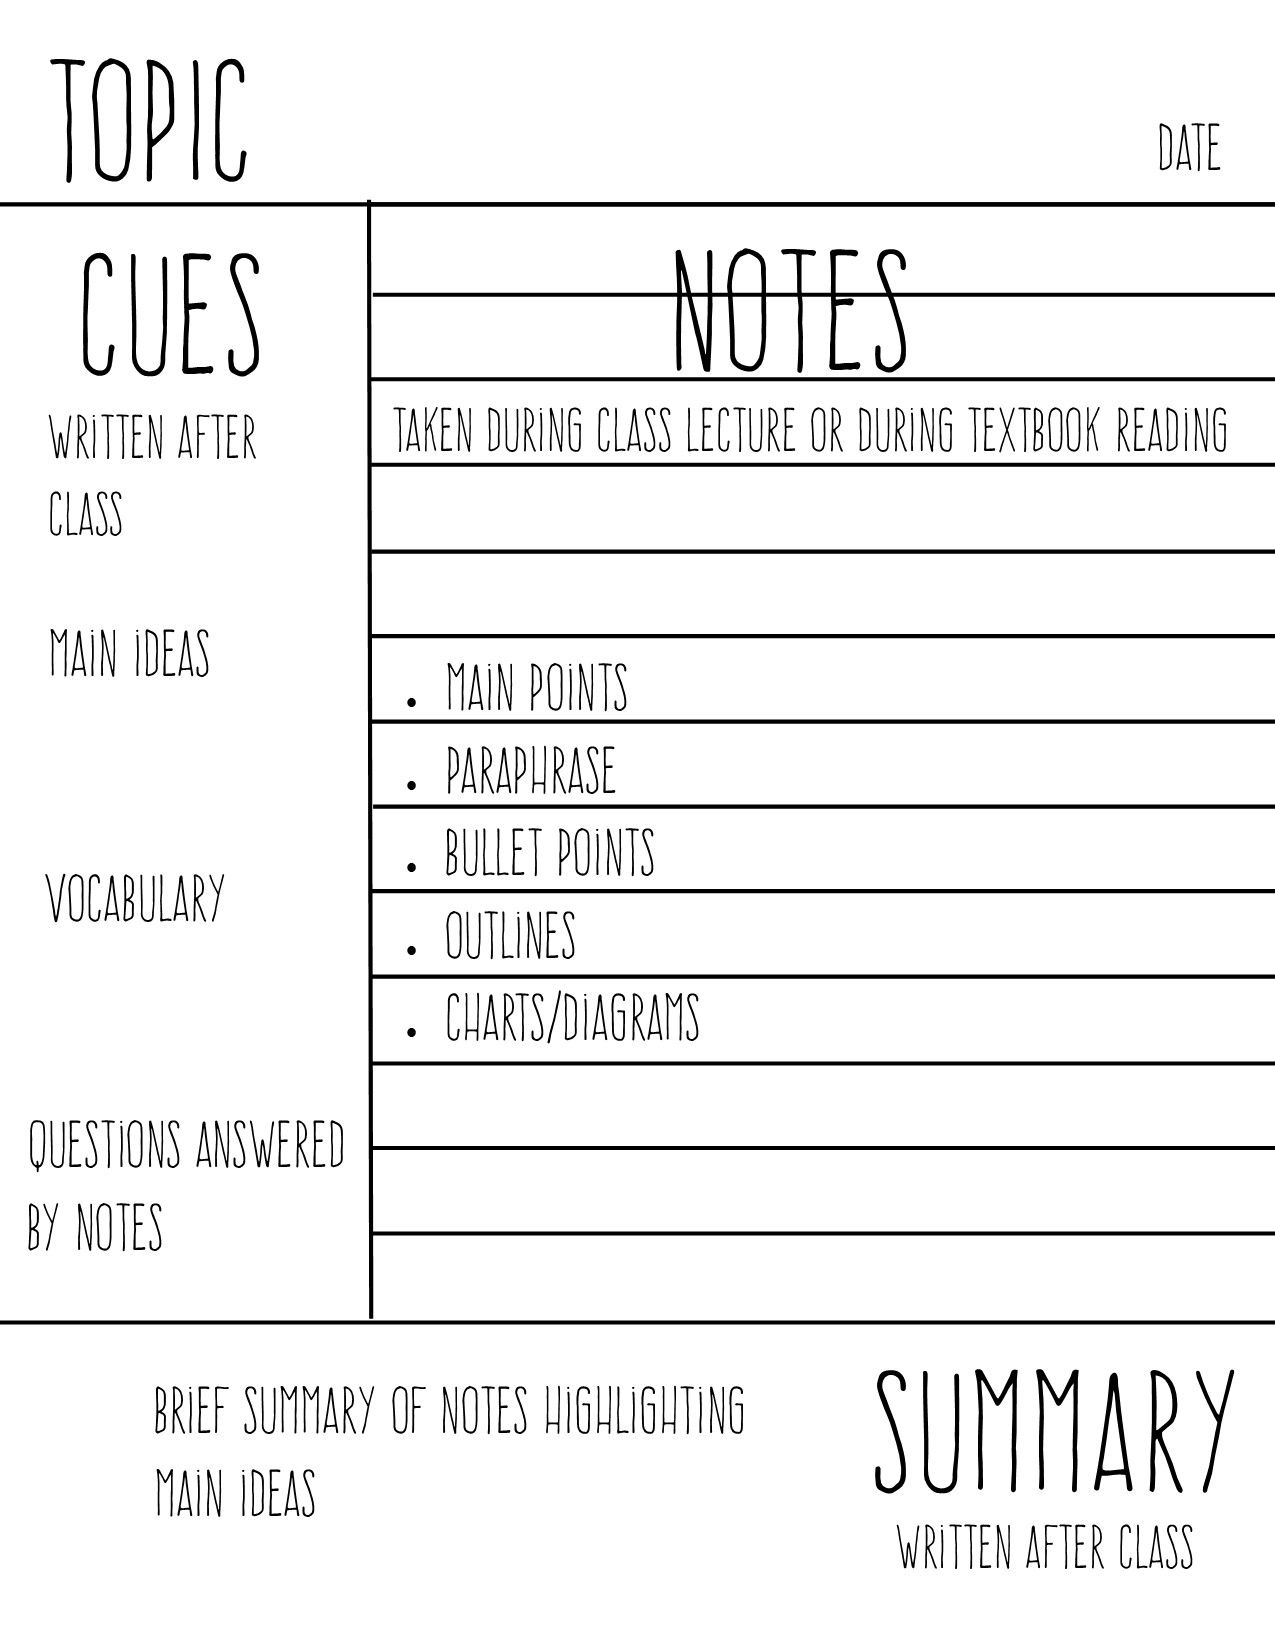 Study Aholic Cornell Notes Guide This Is Just A Simple Guide I Whipped Up For Myself For When I M Using Cornell Cornell Notes Study Notes School Study Tips